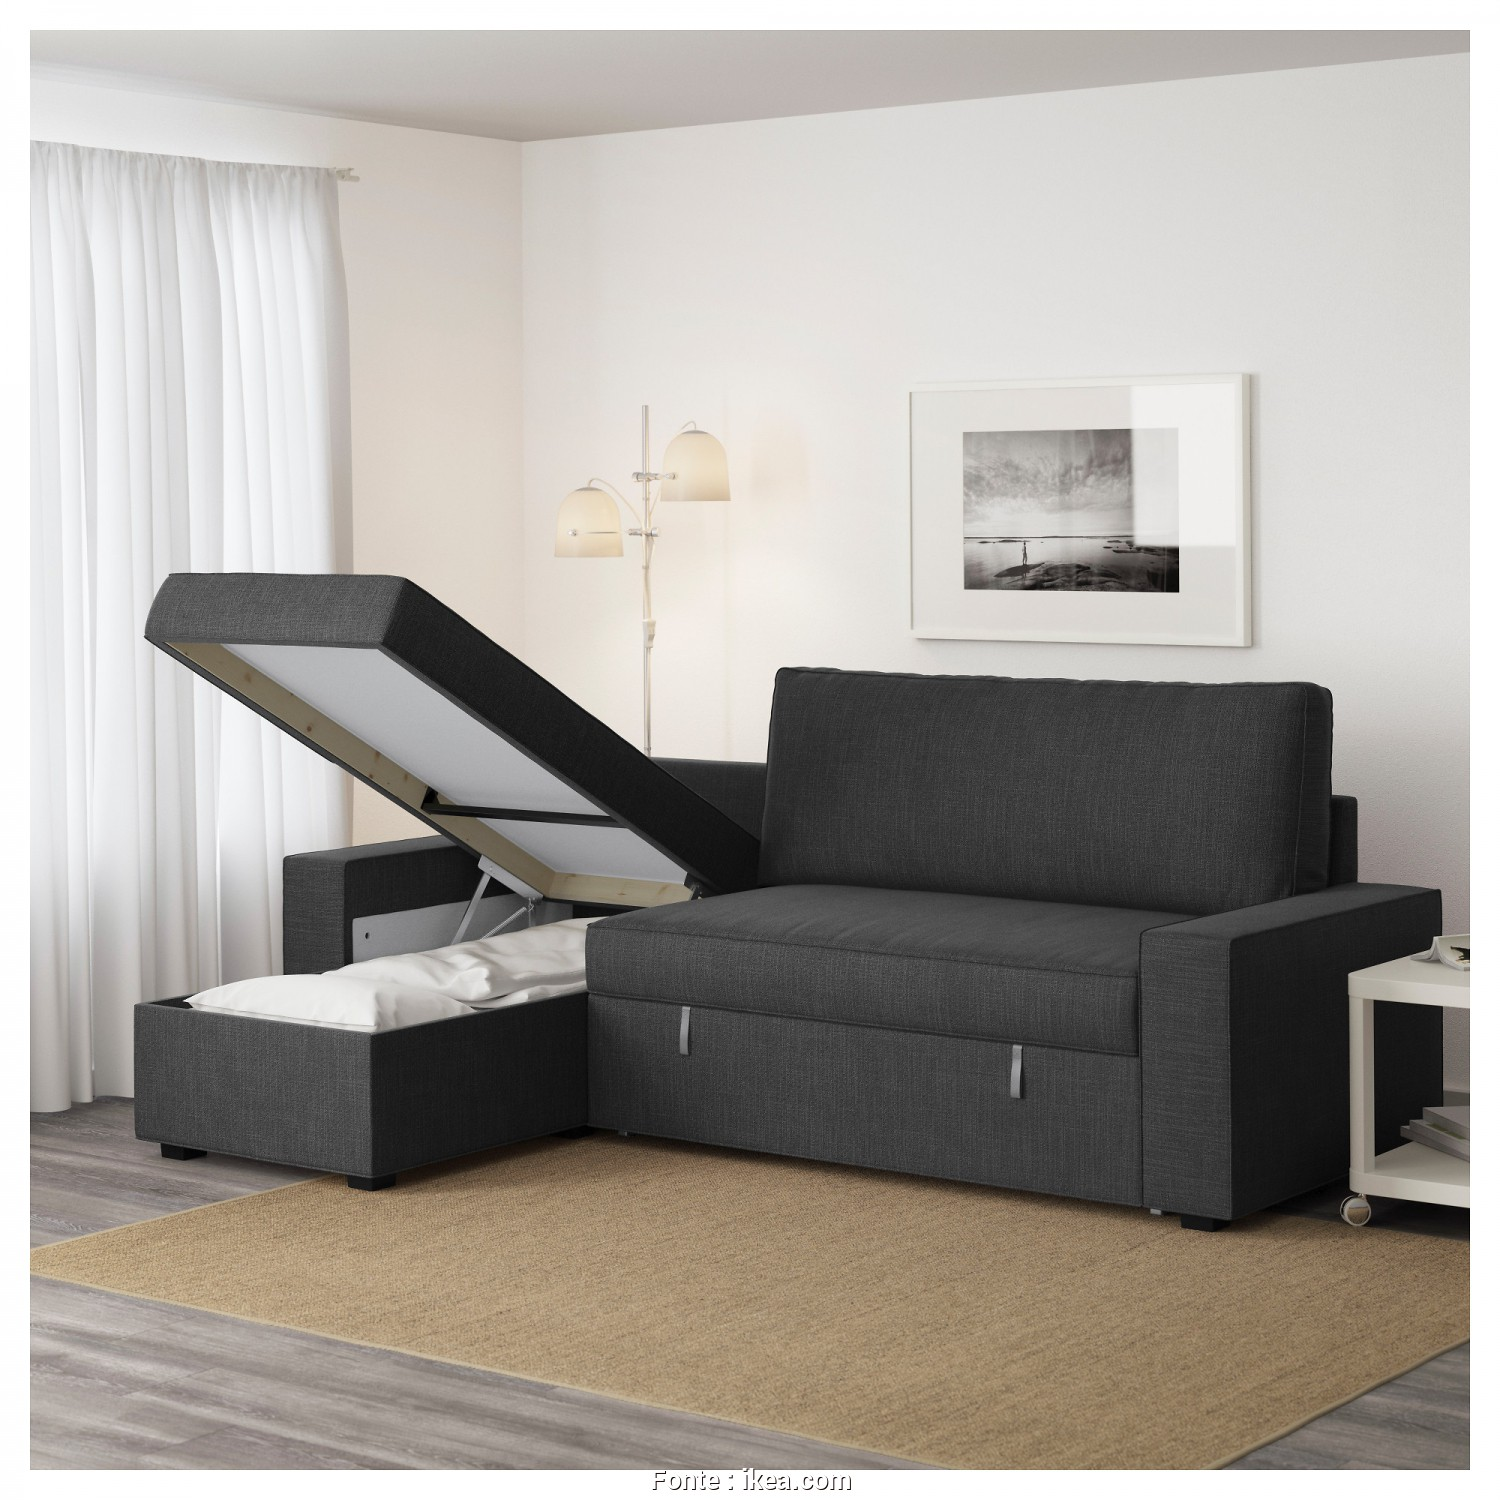 Vilasund Sofa, Ikea, Loveable VILASUND Sofa, With Chaise Longue Hillared Anthracite